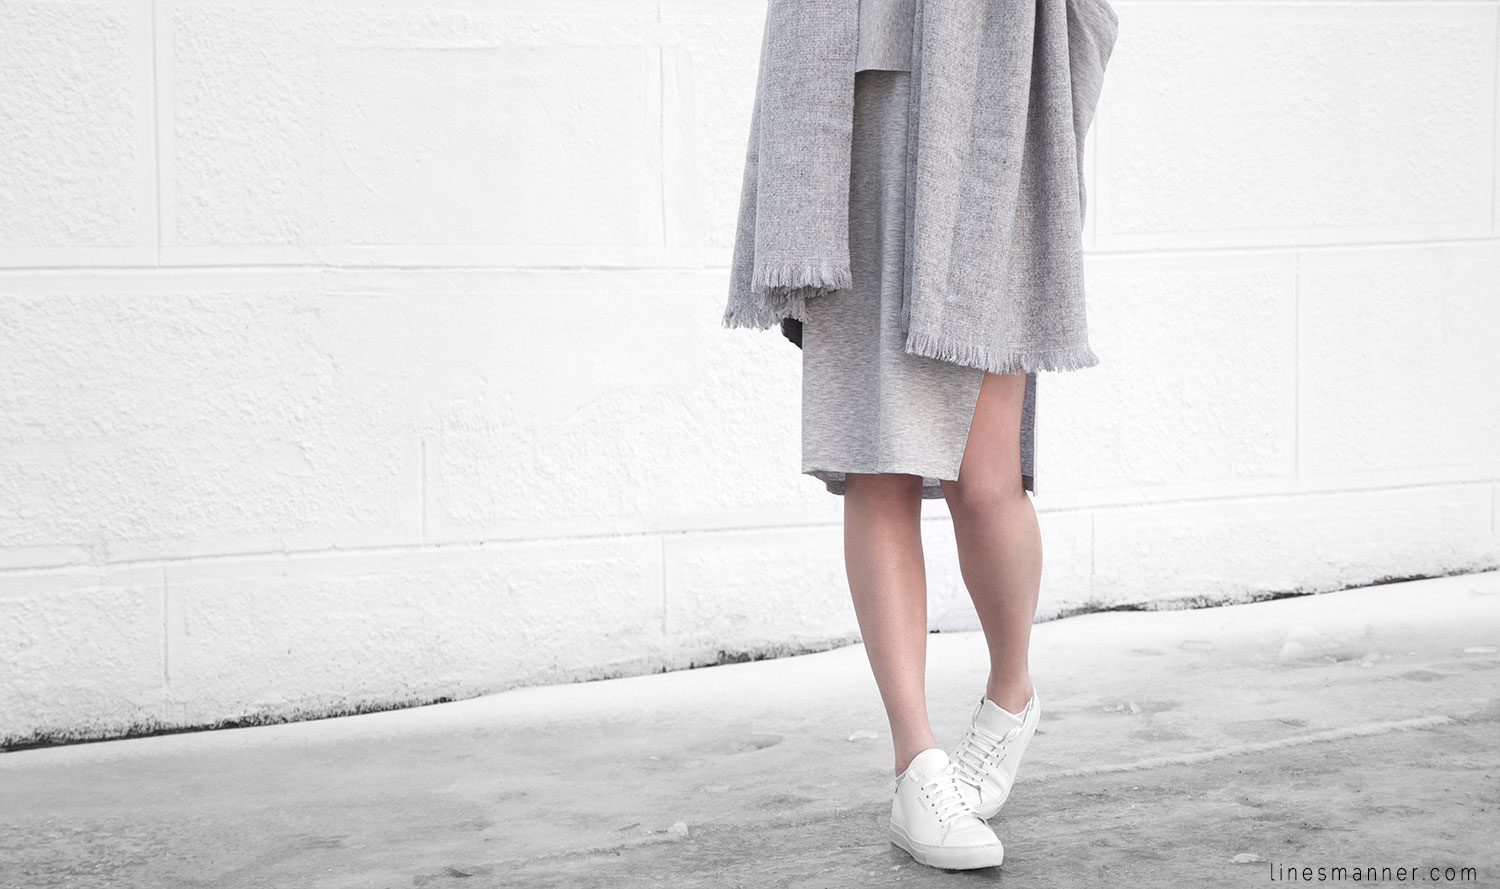 Lines-Manner-Outfit-Grey_on_grey-All_grey-Simplicty-Relaxed-Casual-Textures-Essential-Details-Staples-Minimal-Knit-Cardigan-Coisa-Layering-4